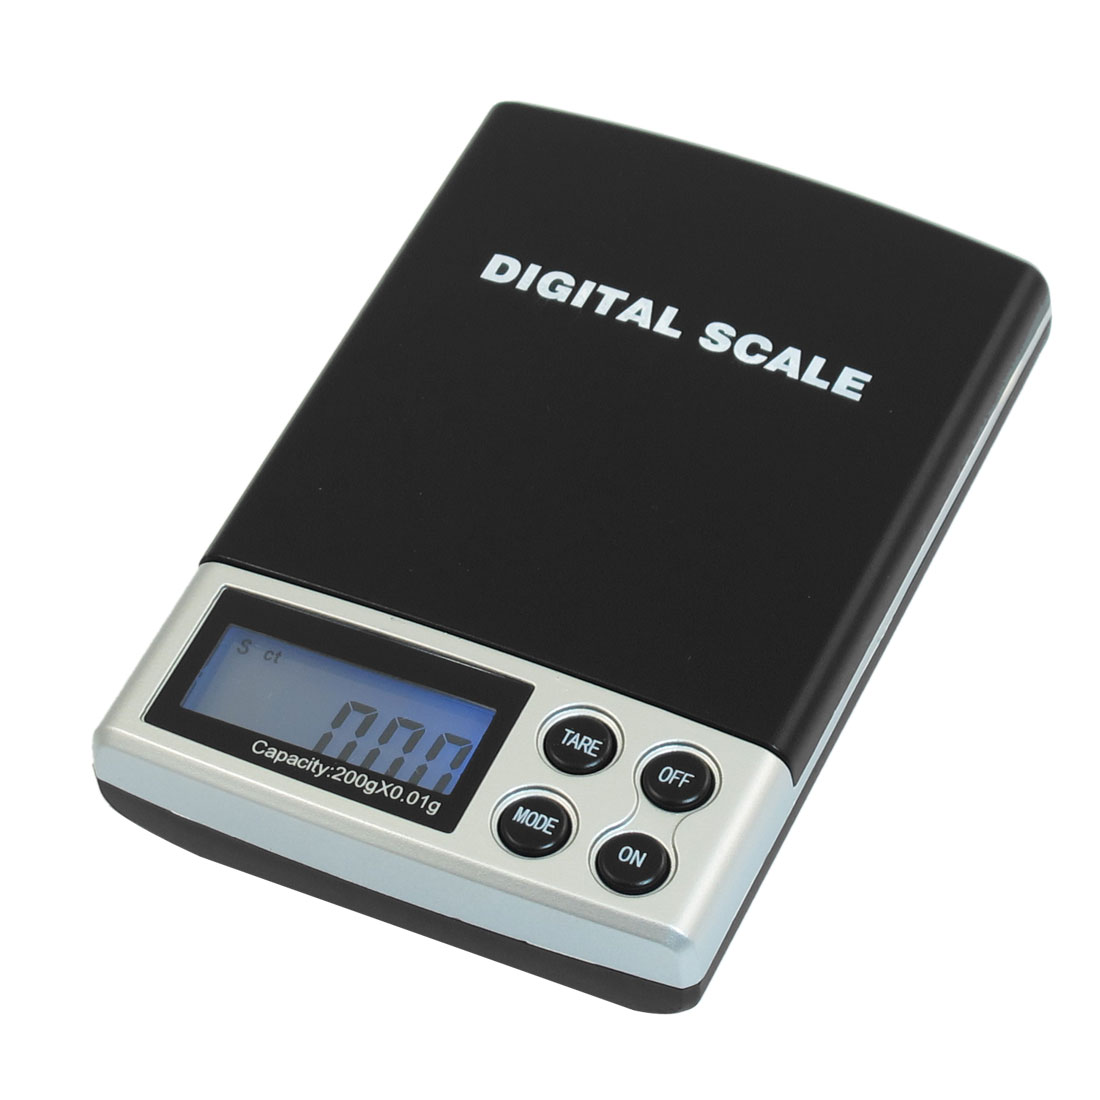 LCD Display Digital Pocket Rectangle Weight Scale 200g